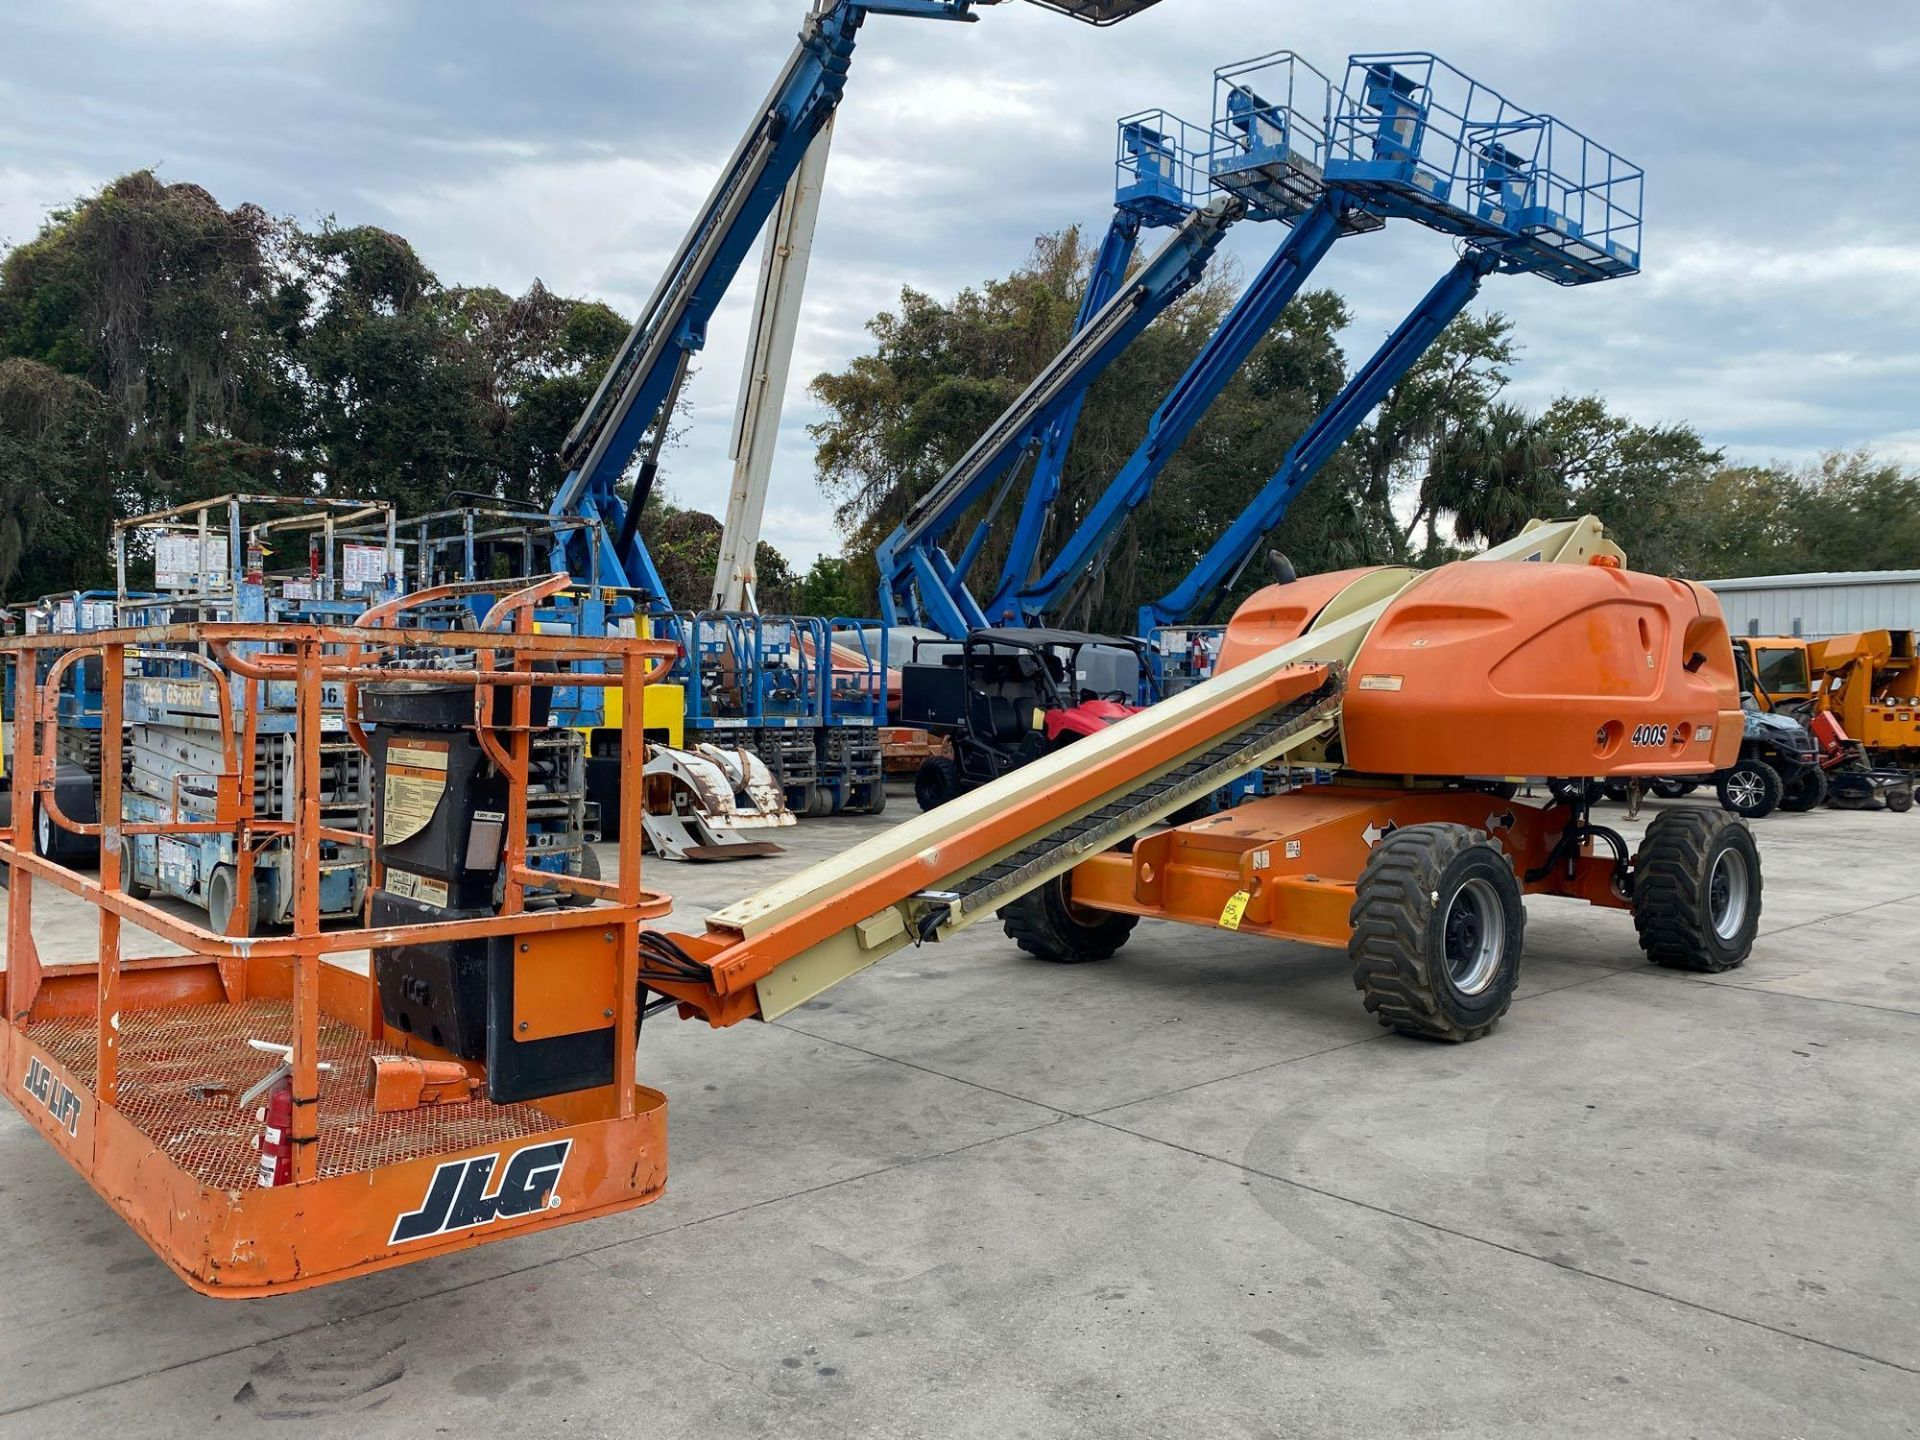 Lot 63A - JLG 400SDIESEL BOOM LIFT, 40' PLATFORM HEIGHT, 4X4, 366 HOURS SHOWING